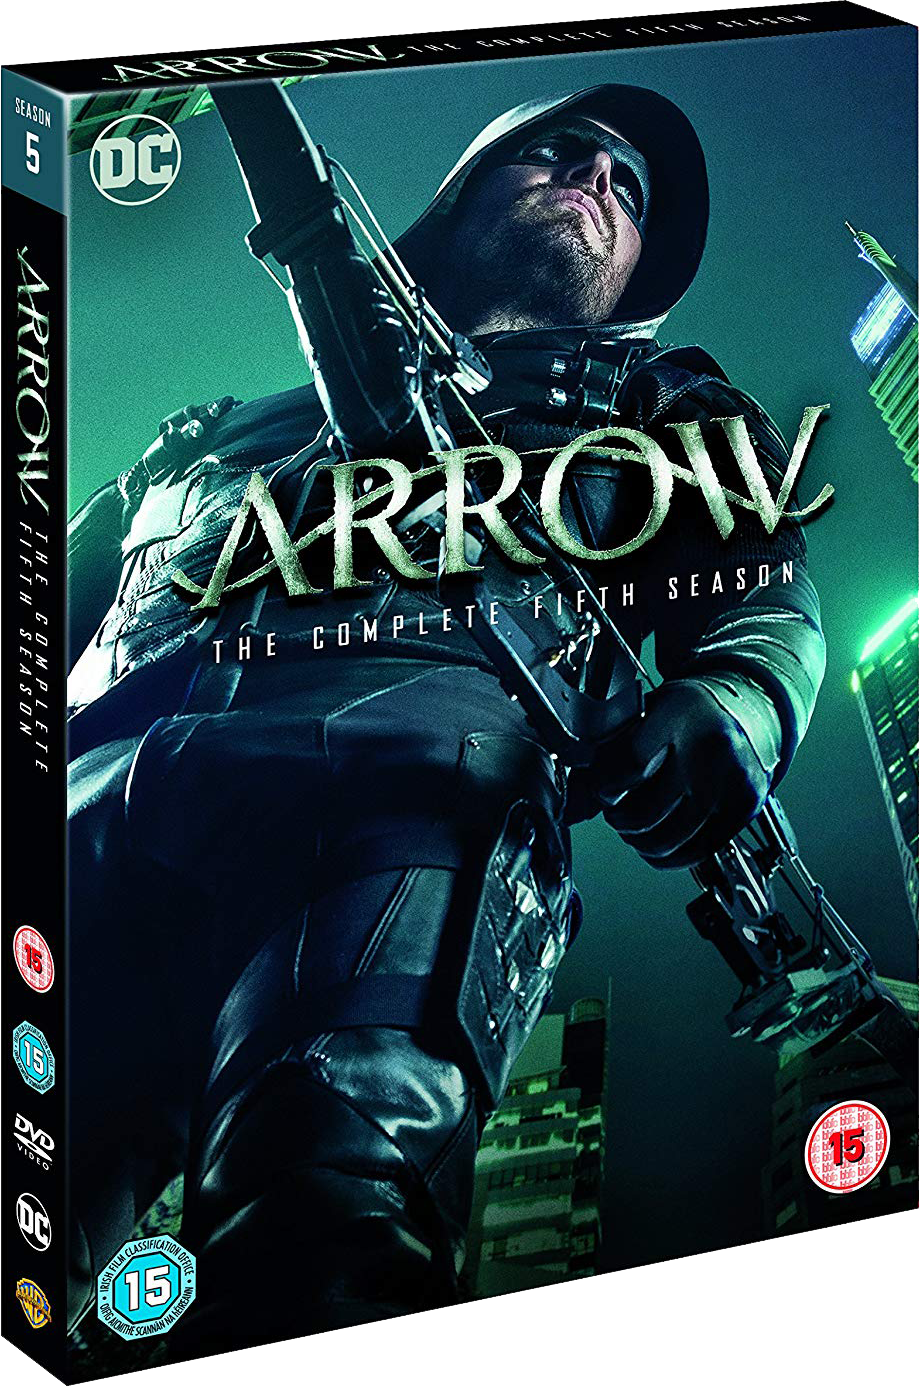 Arrow - The Complete Fifth Season region 2 cover.png